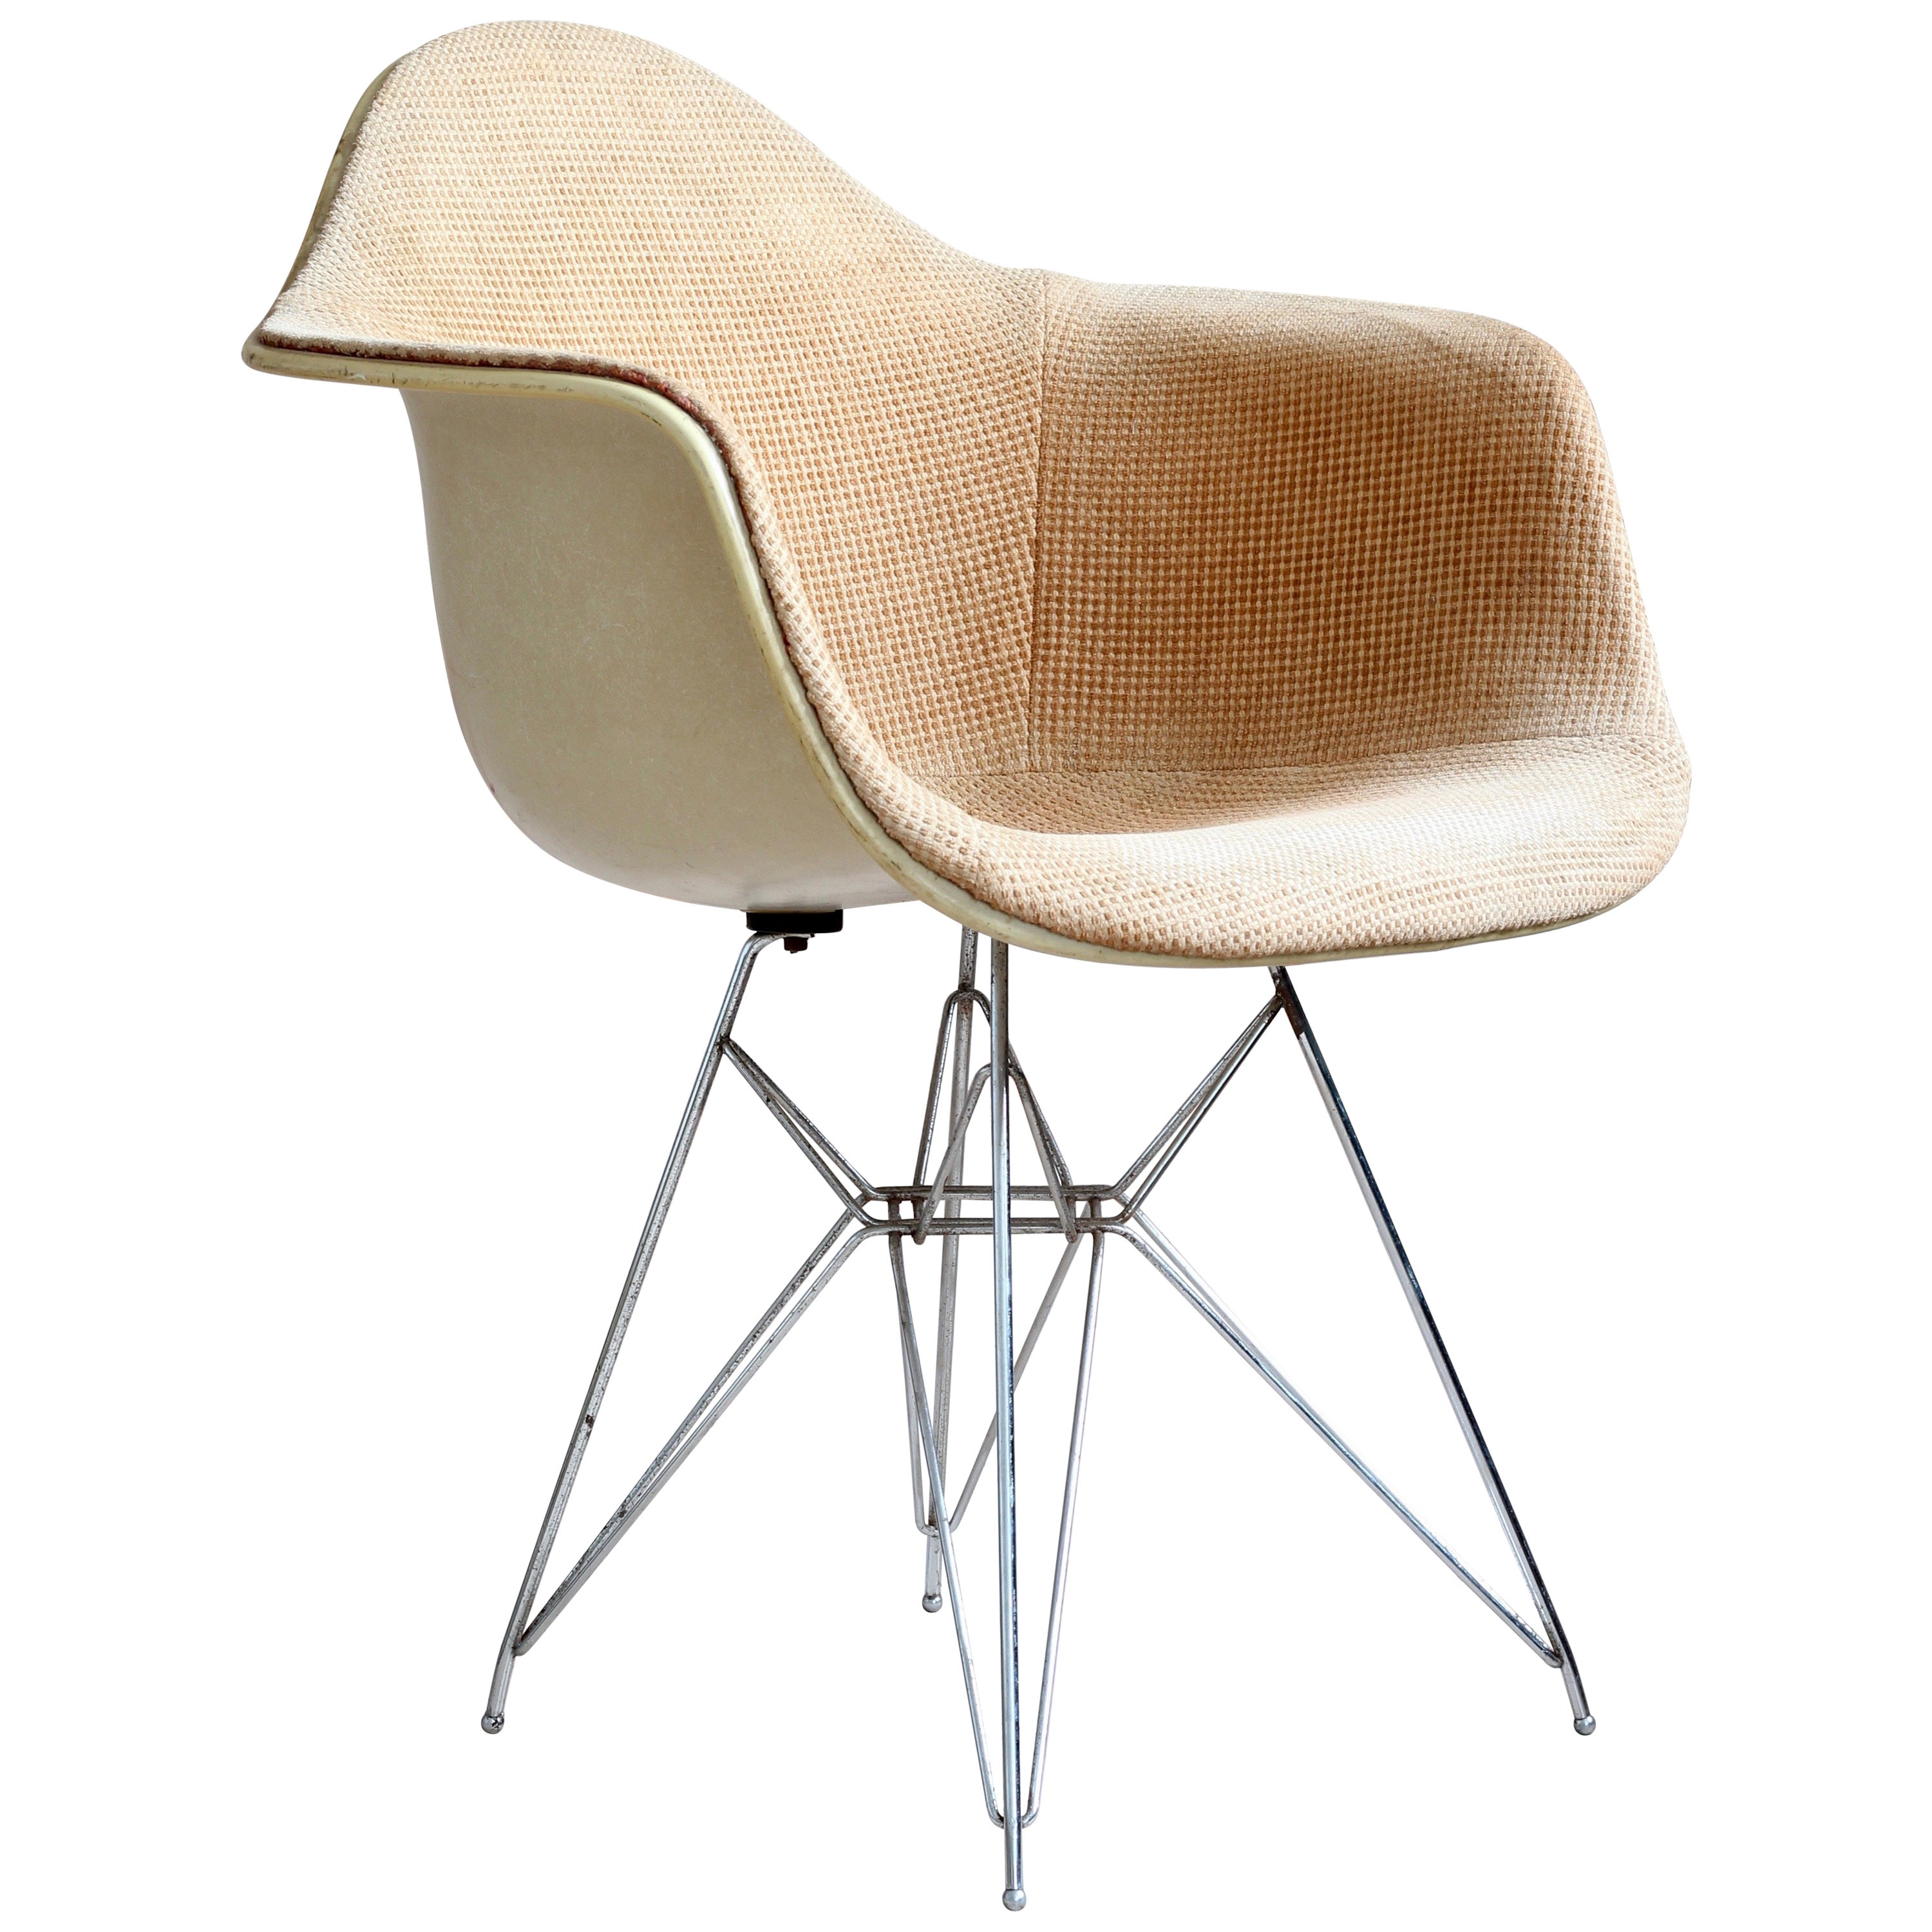 Eames Chair Dar Set Of 2 Dar Chairs By Charles Ray Eames For Herman Miller By Zenith Plastics